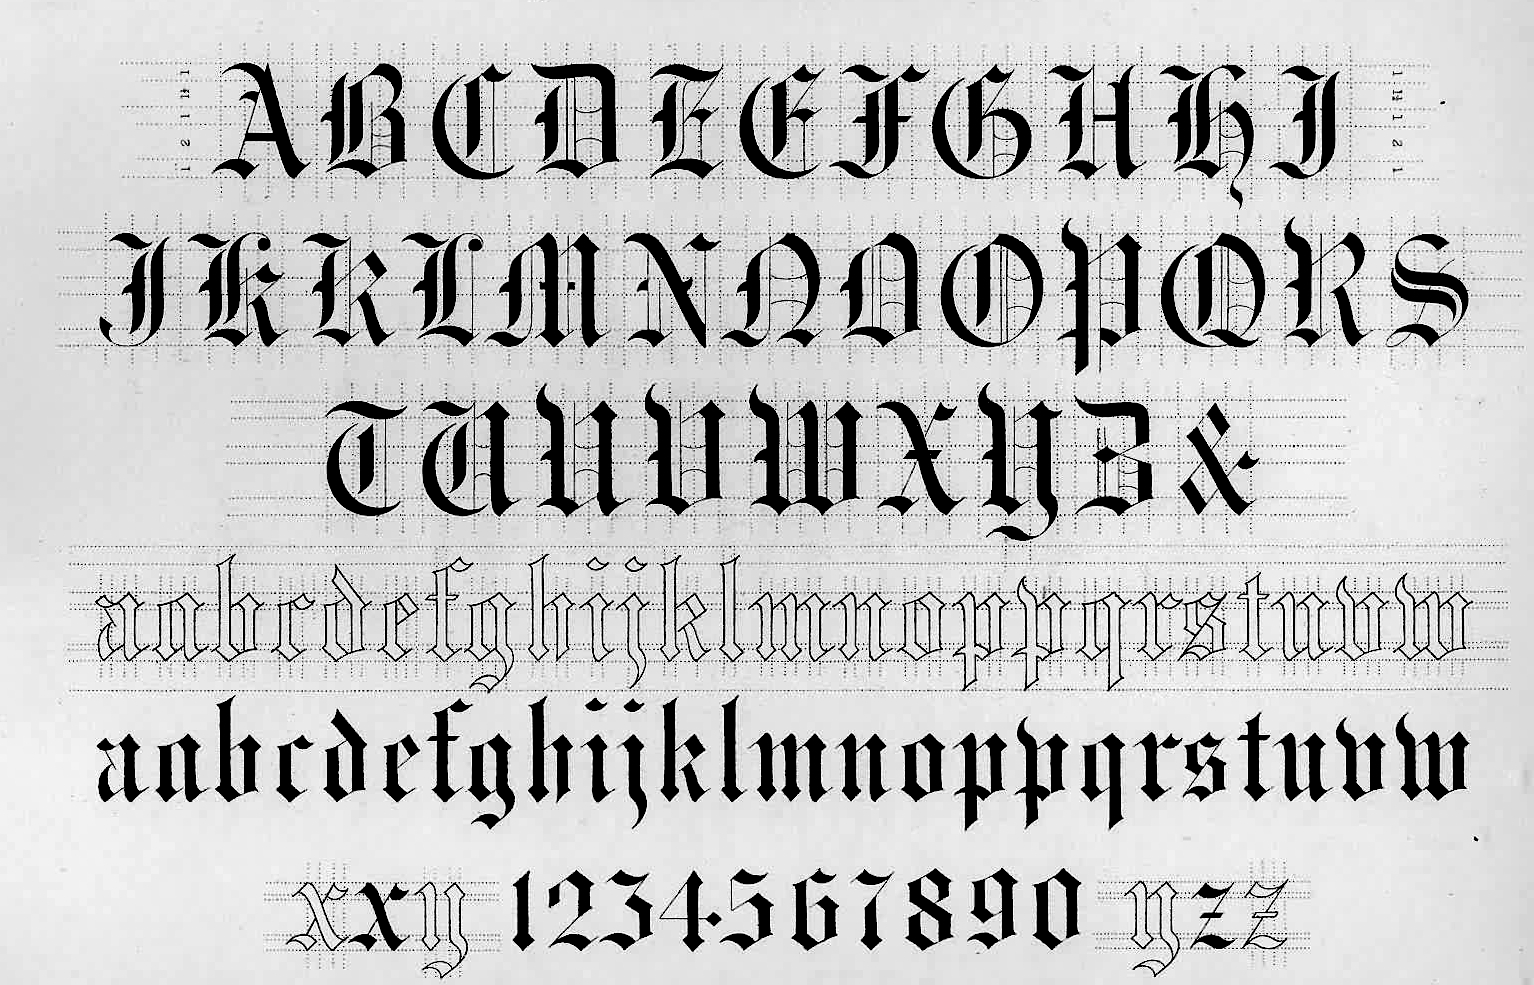 Old English Letter Font Images Reference Template Word